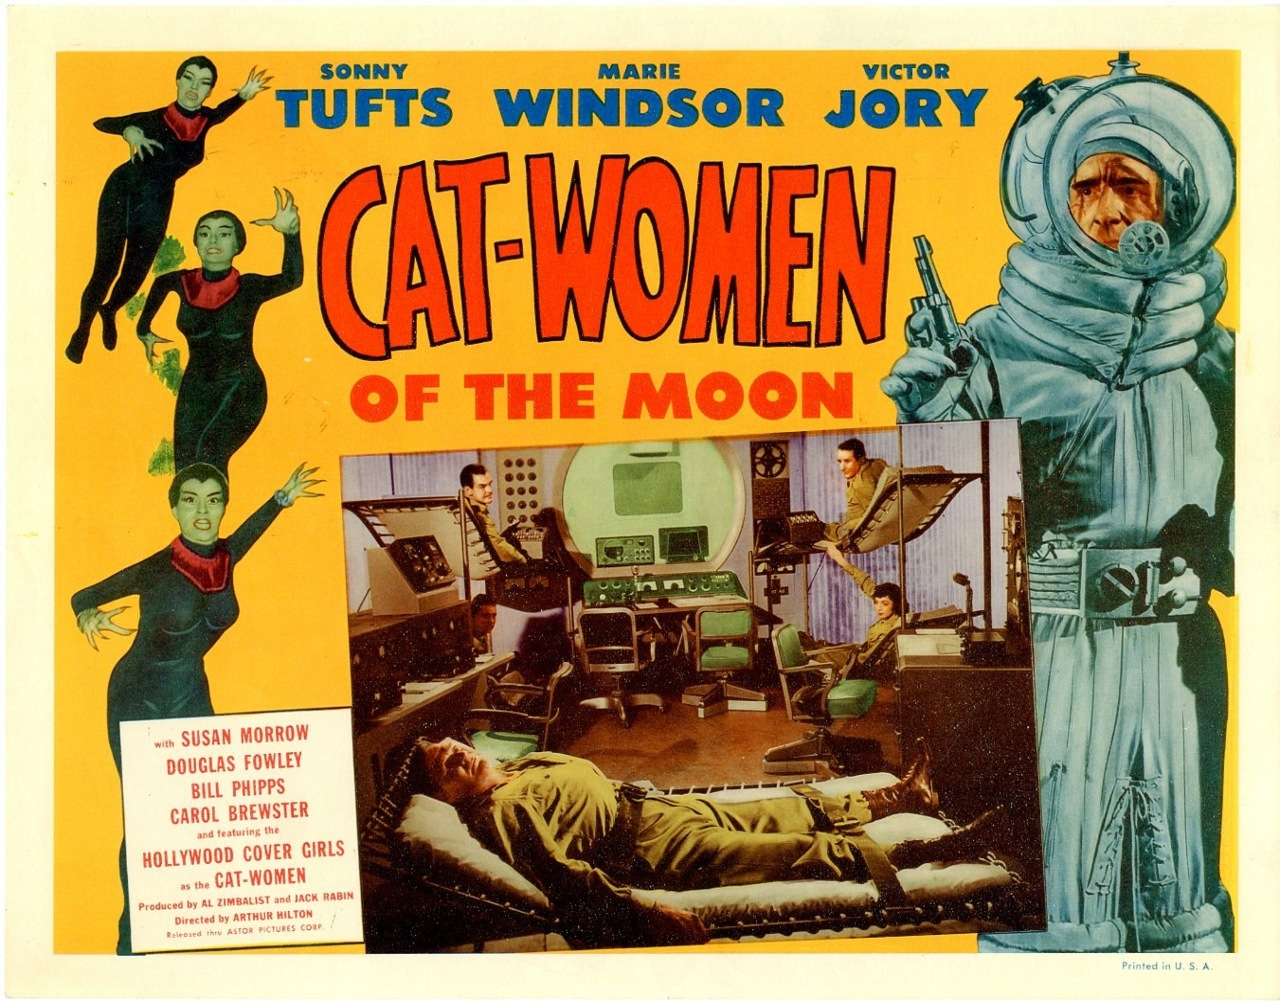 Victor Jory, Sonny Tufts, and Marie Windsor in Cat-Women of the Moon (1953)